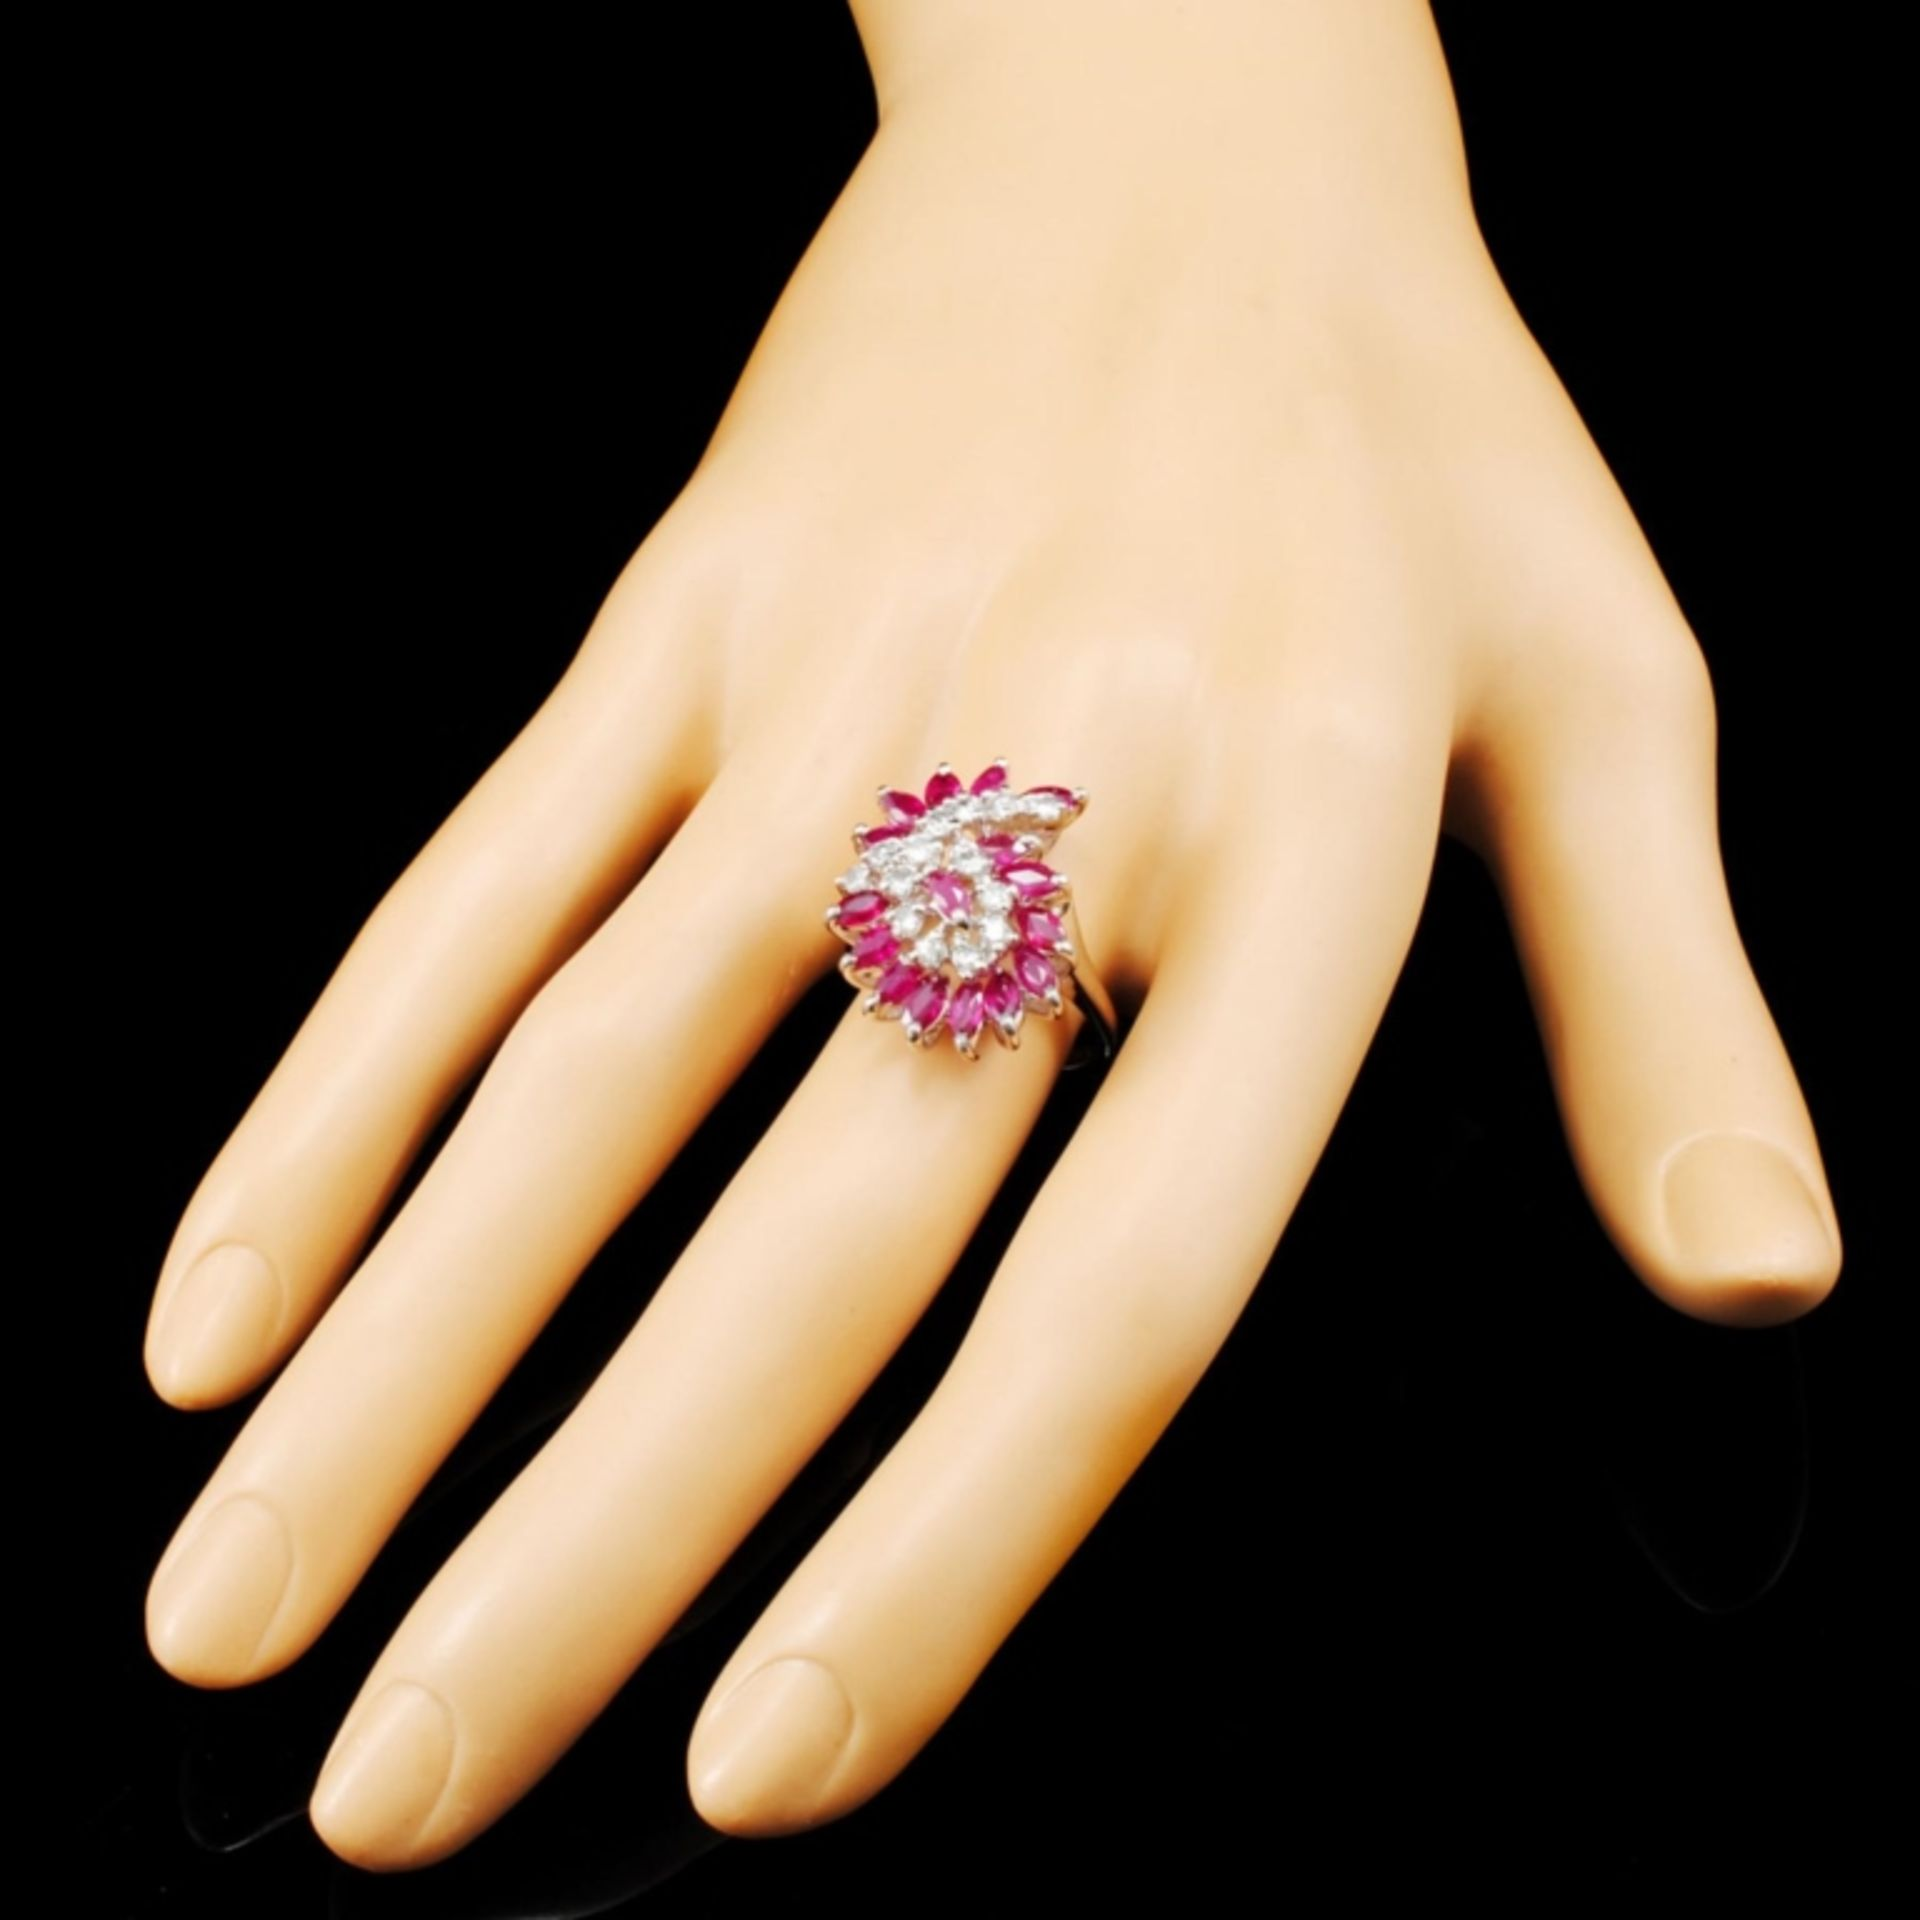 14K Gold 1.92ct Ruby & 0.35ctw Diamond Ring - Image 3 of 5